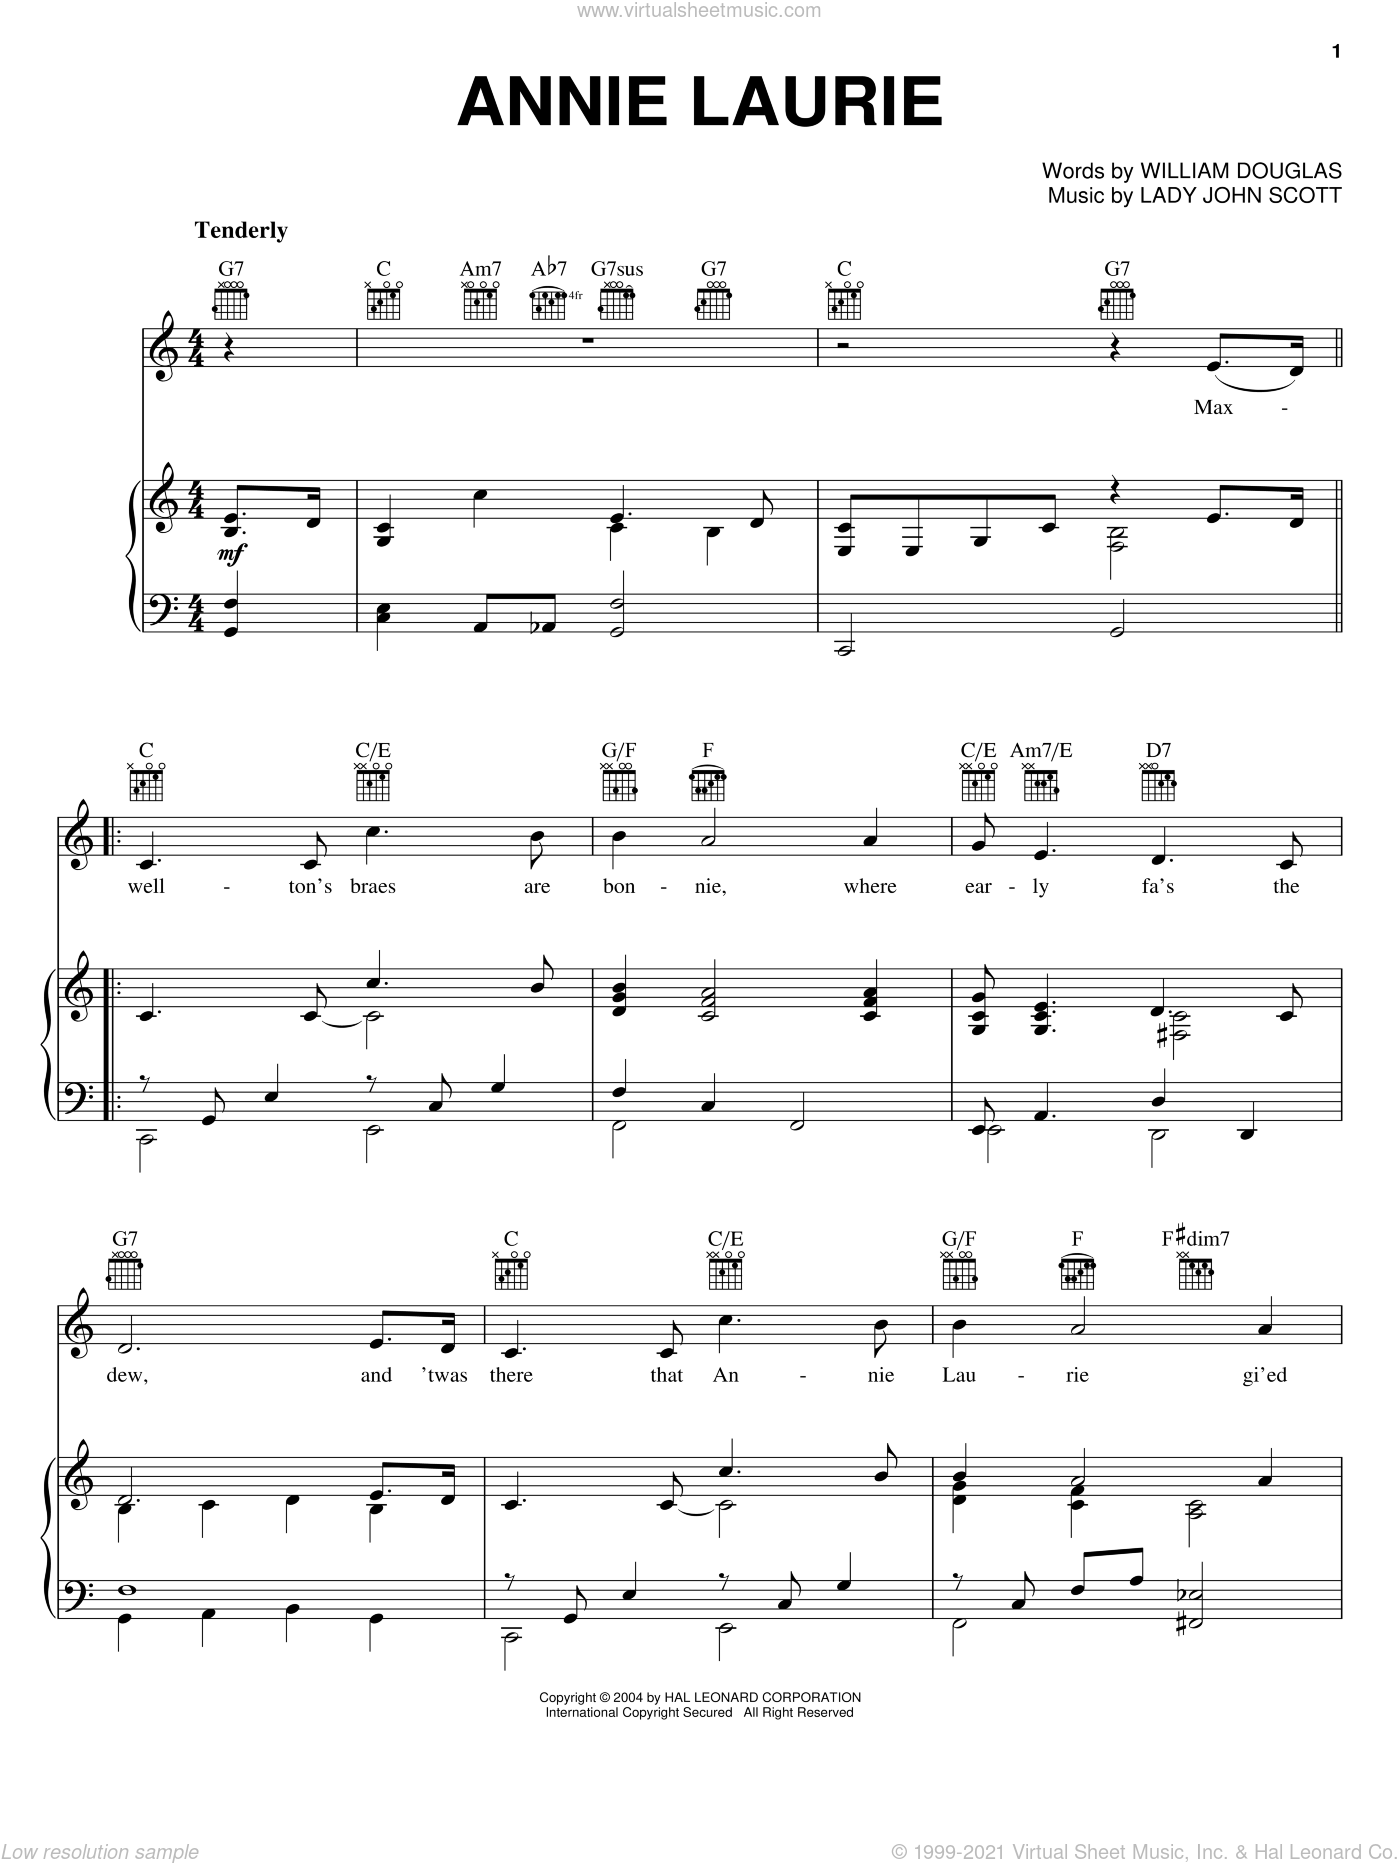 Annie Laurie sheet music for voice, piano or guitar by William Douglas and Lady John Scott, intermediate skill level